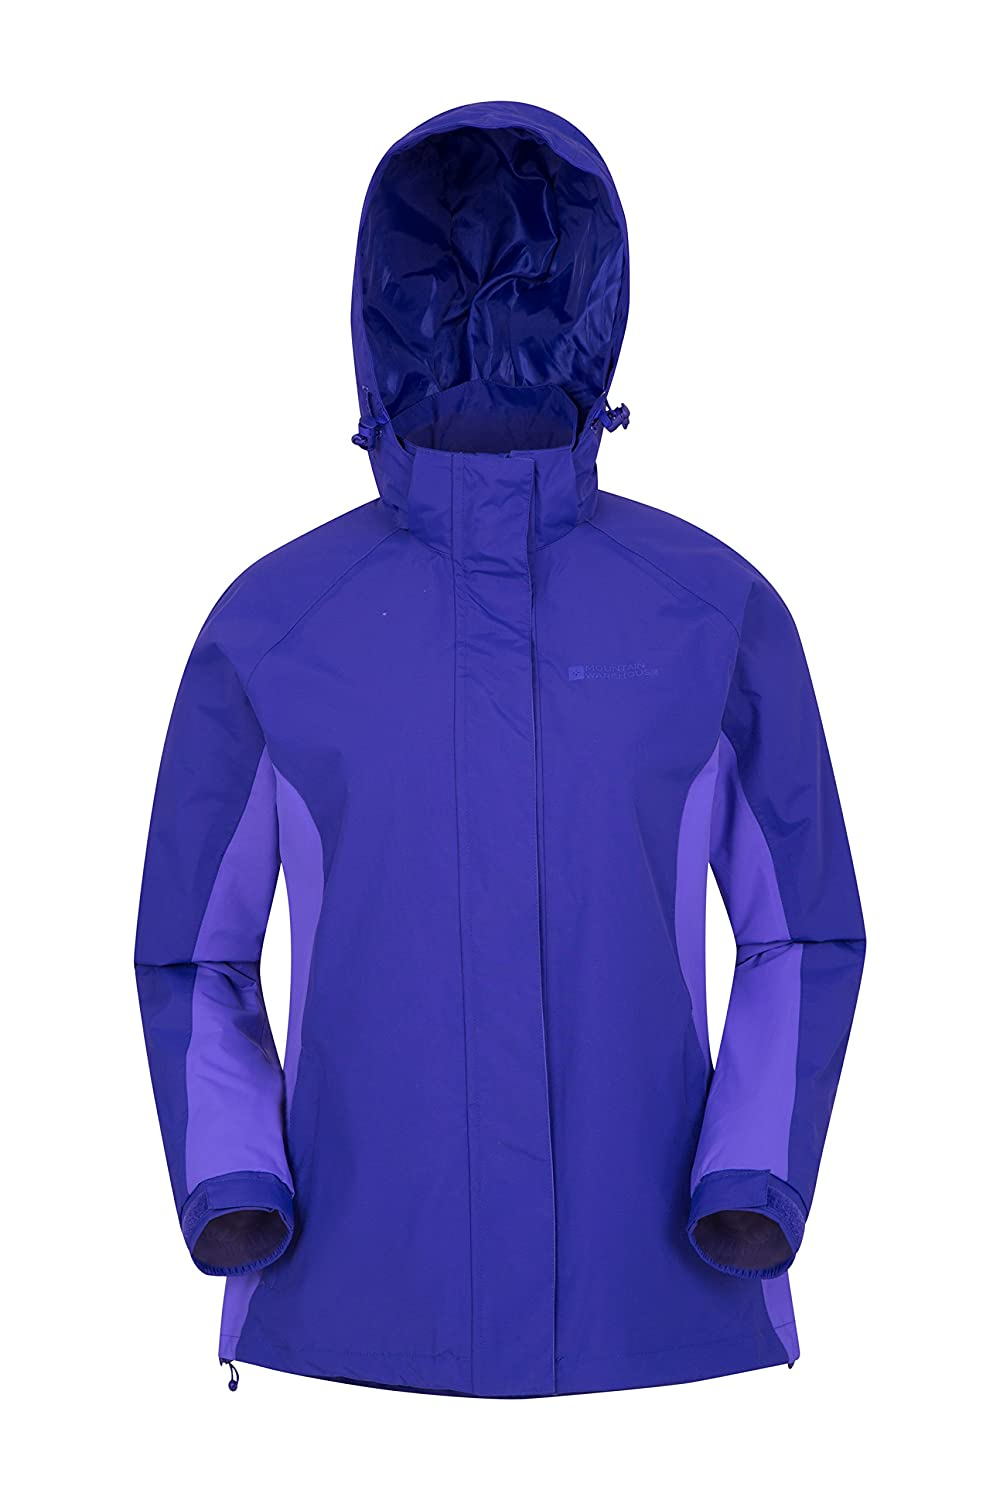 Mountain Warehouse Breeze Womens Jacket - Waterproof Rain Coat, Breathable Summer Overcoat, Taped Seams, Lightweight Spring Travelling, Camping & Outdoor